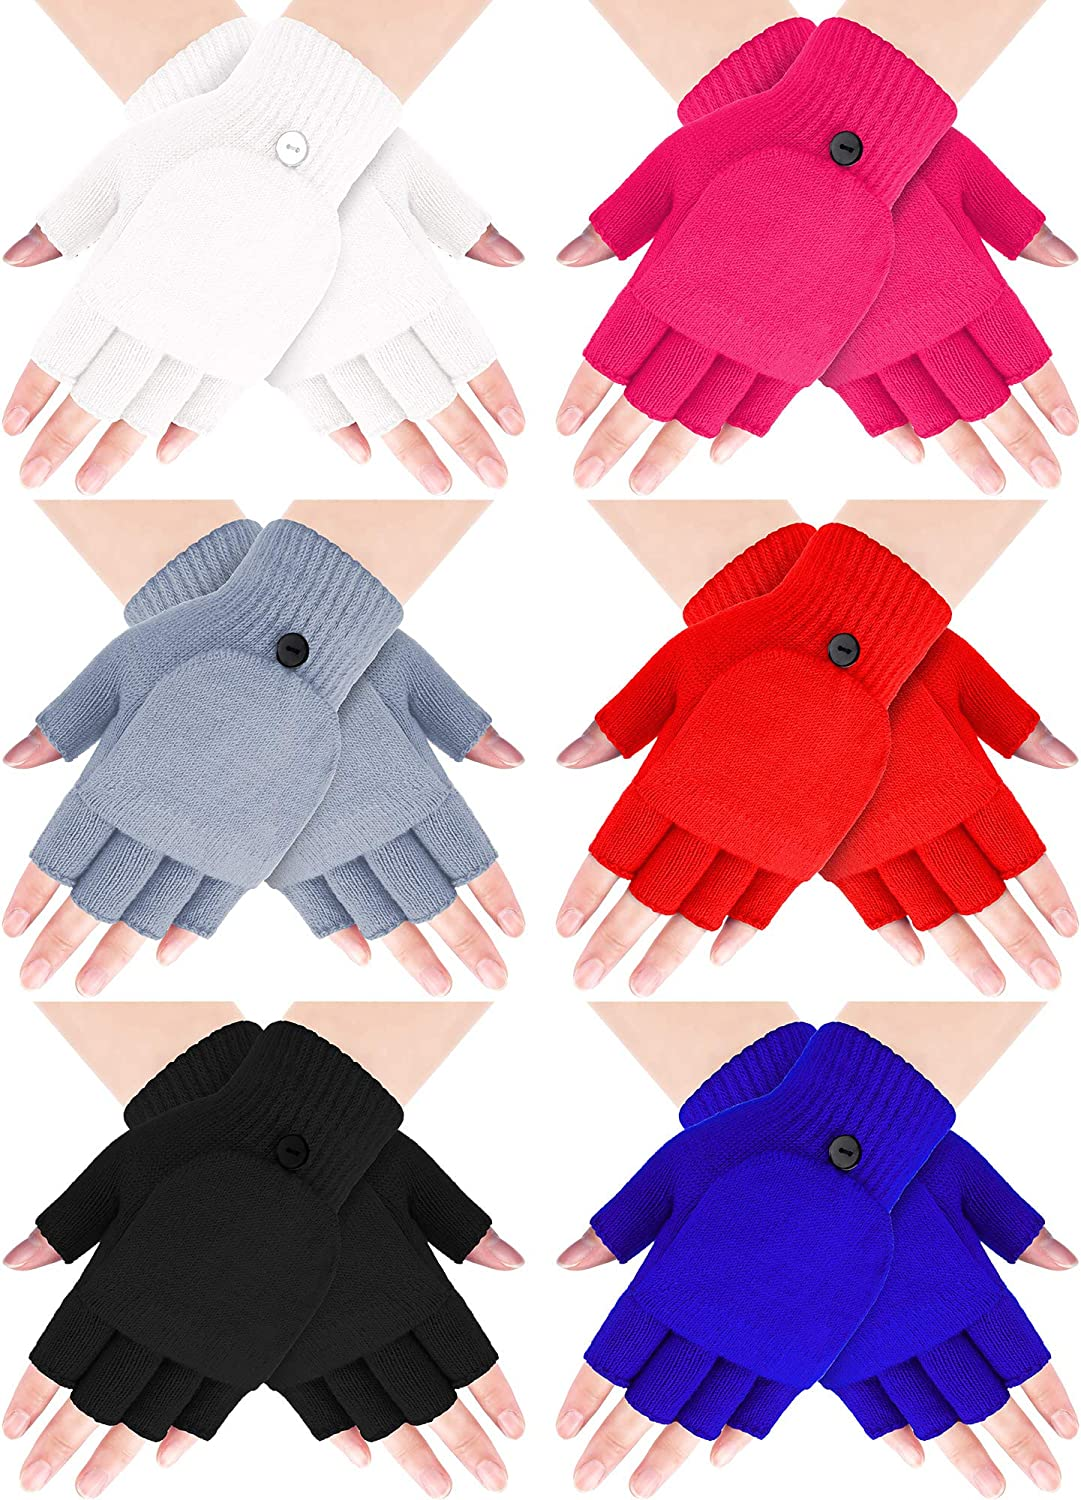 6 Pairs Women Winter Flip Gloves Convertible Mittens Thick Knitted Half Finger Gloves with Cover